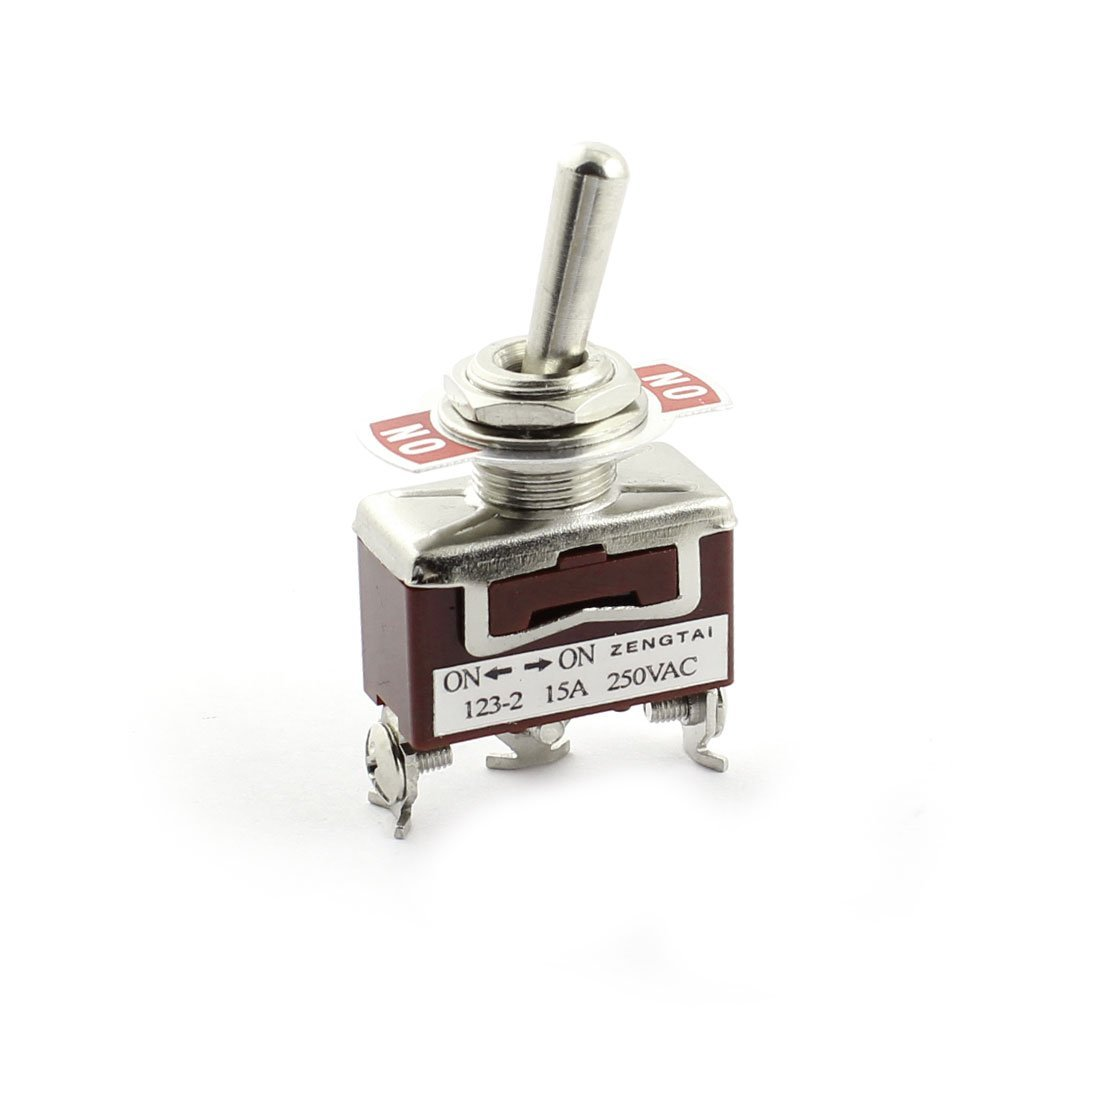 AC 15A 250V Panel Mount 2 Position SPDT ON-ON Momentary Toggle Switch DealMux DLM-B00XBG2LS4